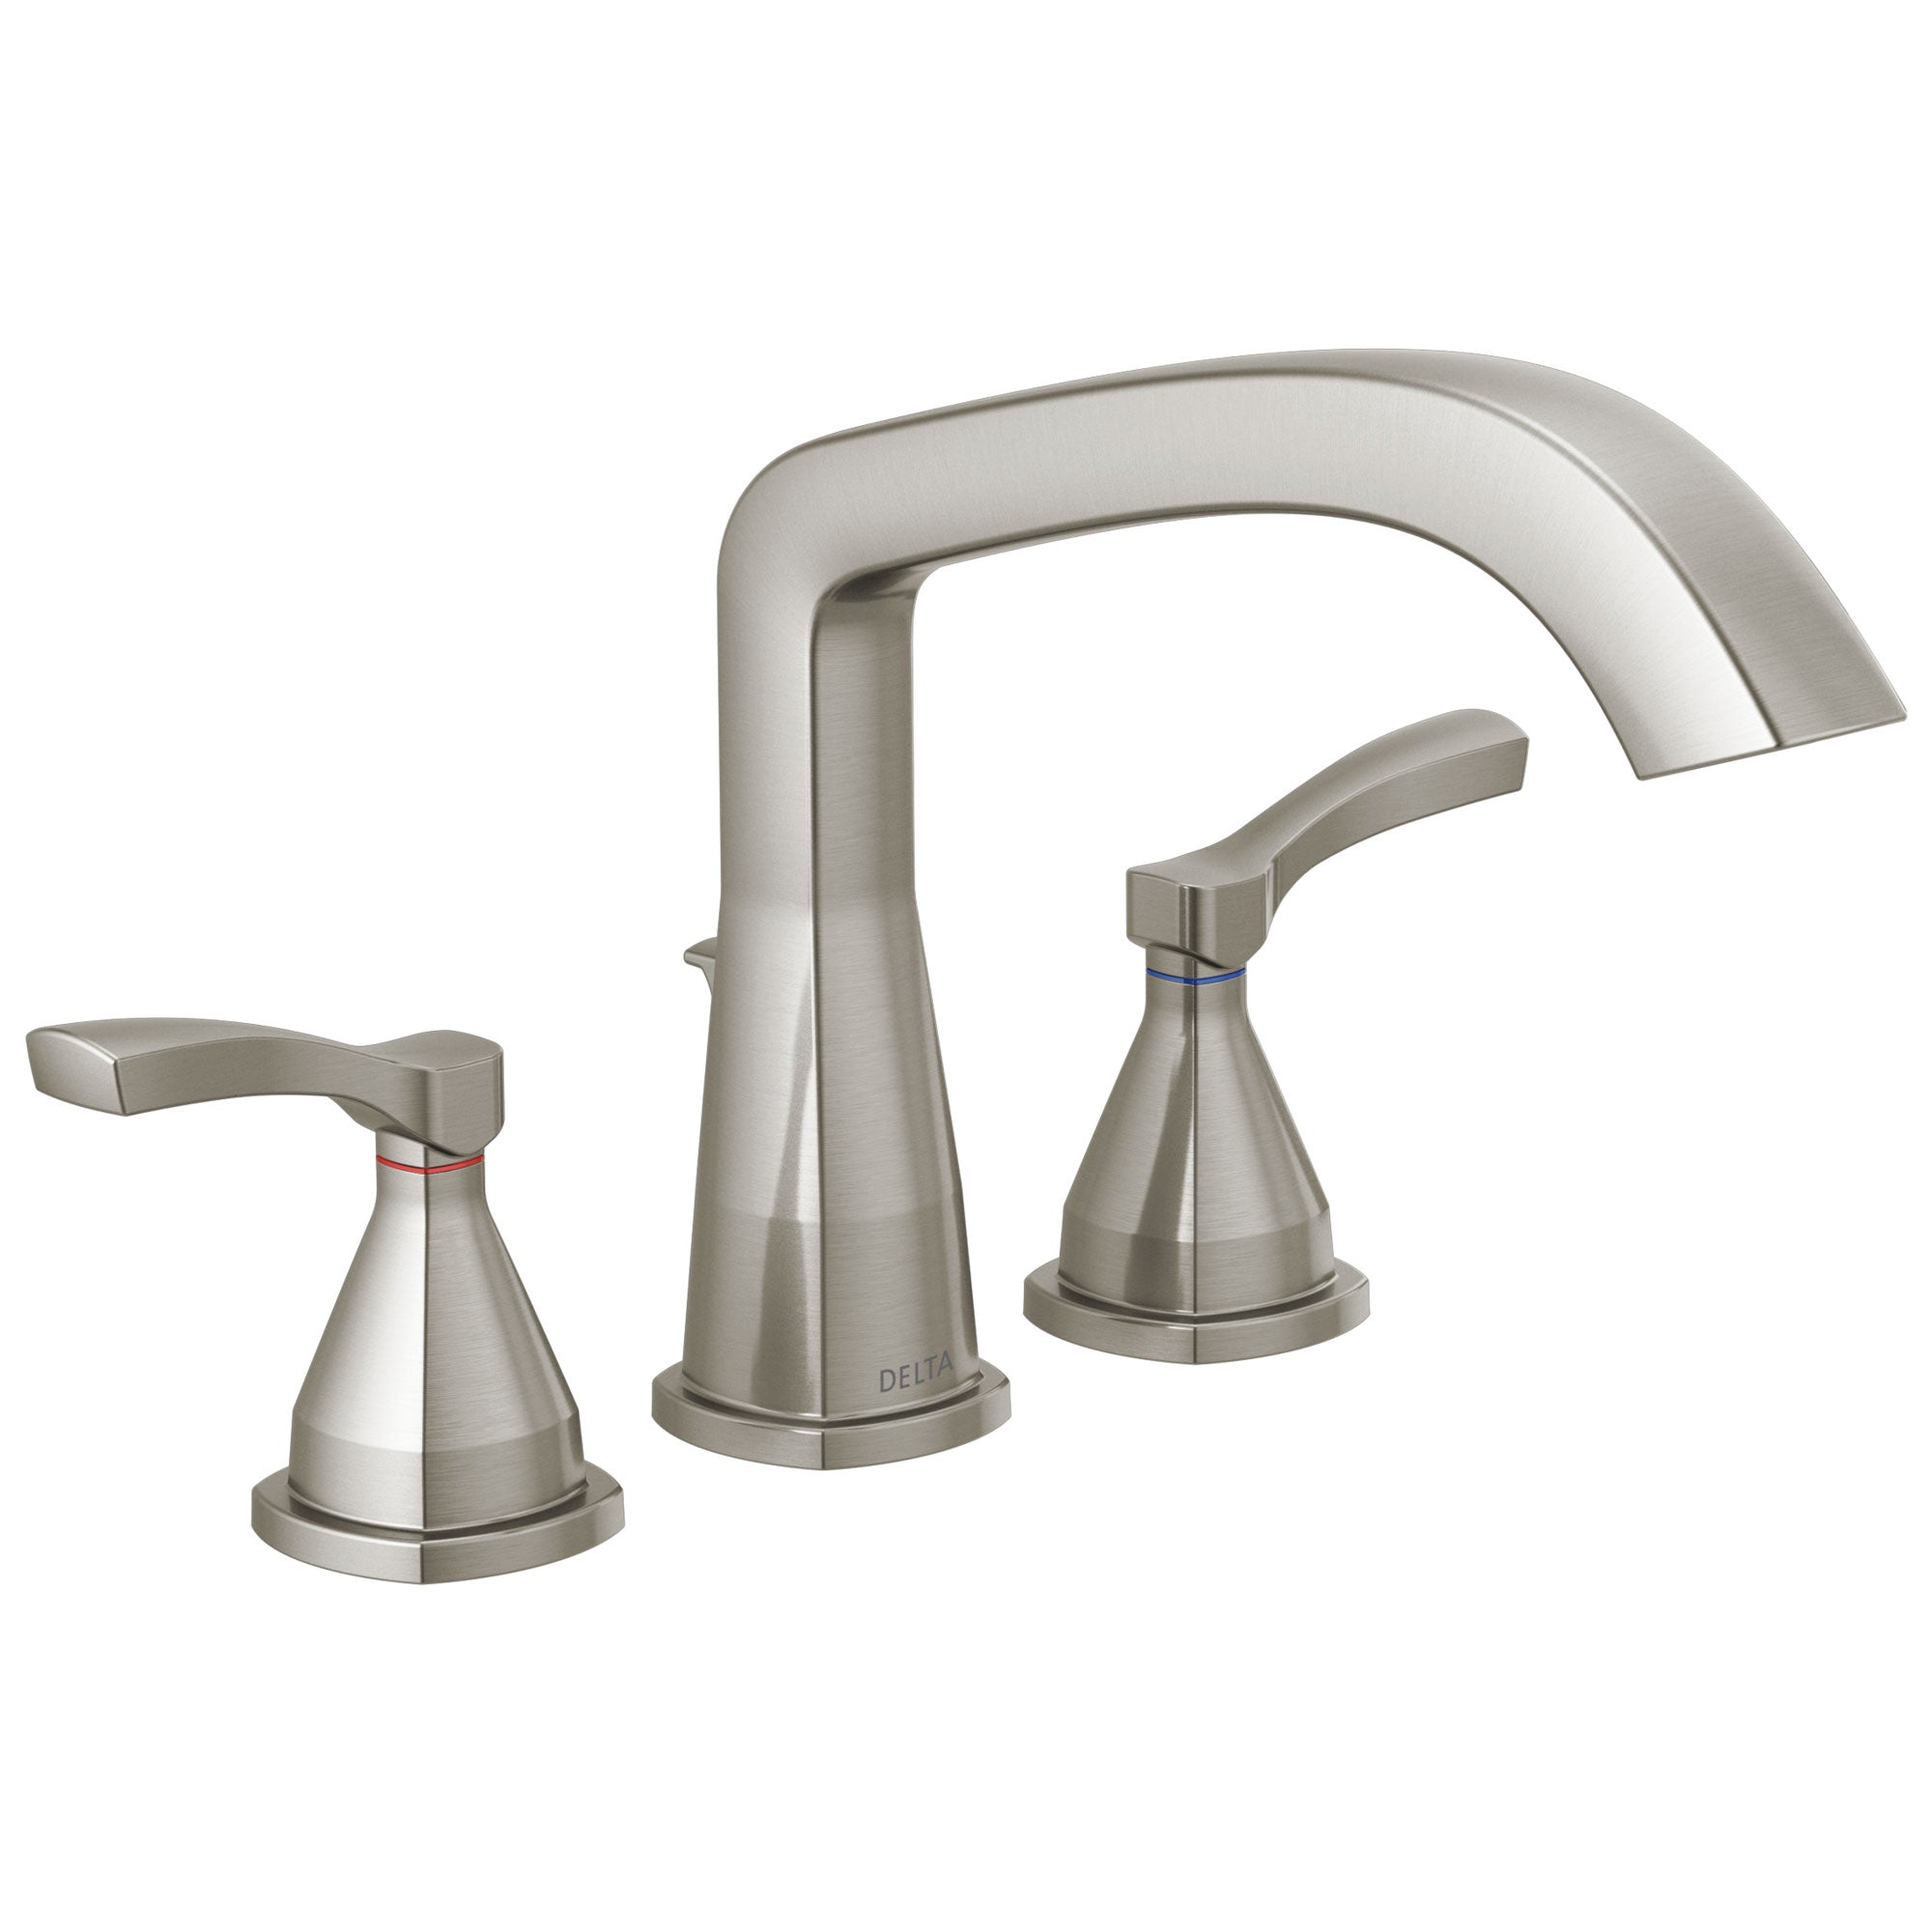 Delta Stryke Collection Stainless Steel Finish Three Hole Roman Tub Filler Faucet Includes Rough-in Valve and Lever Handles D3155V